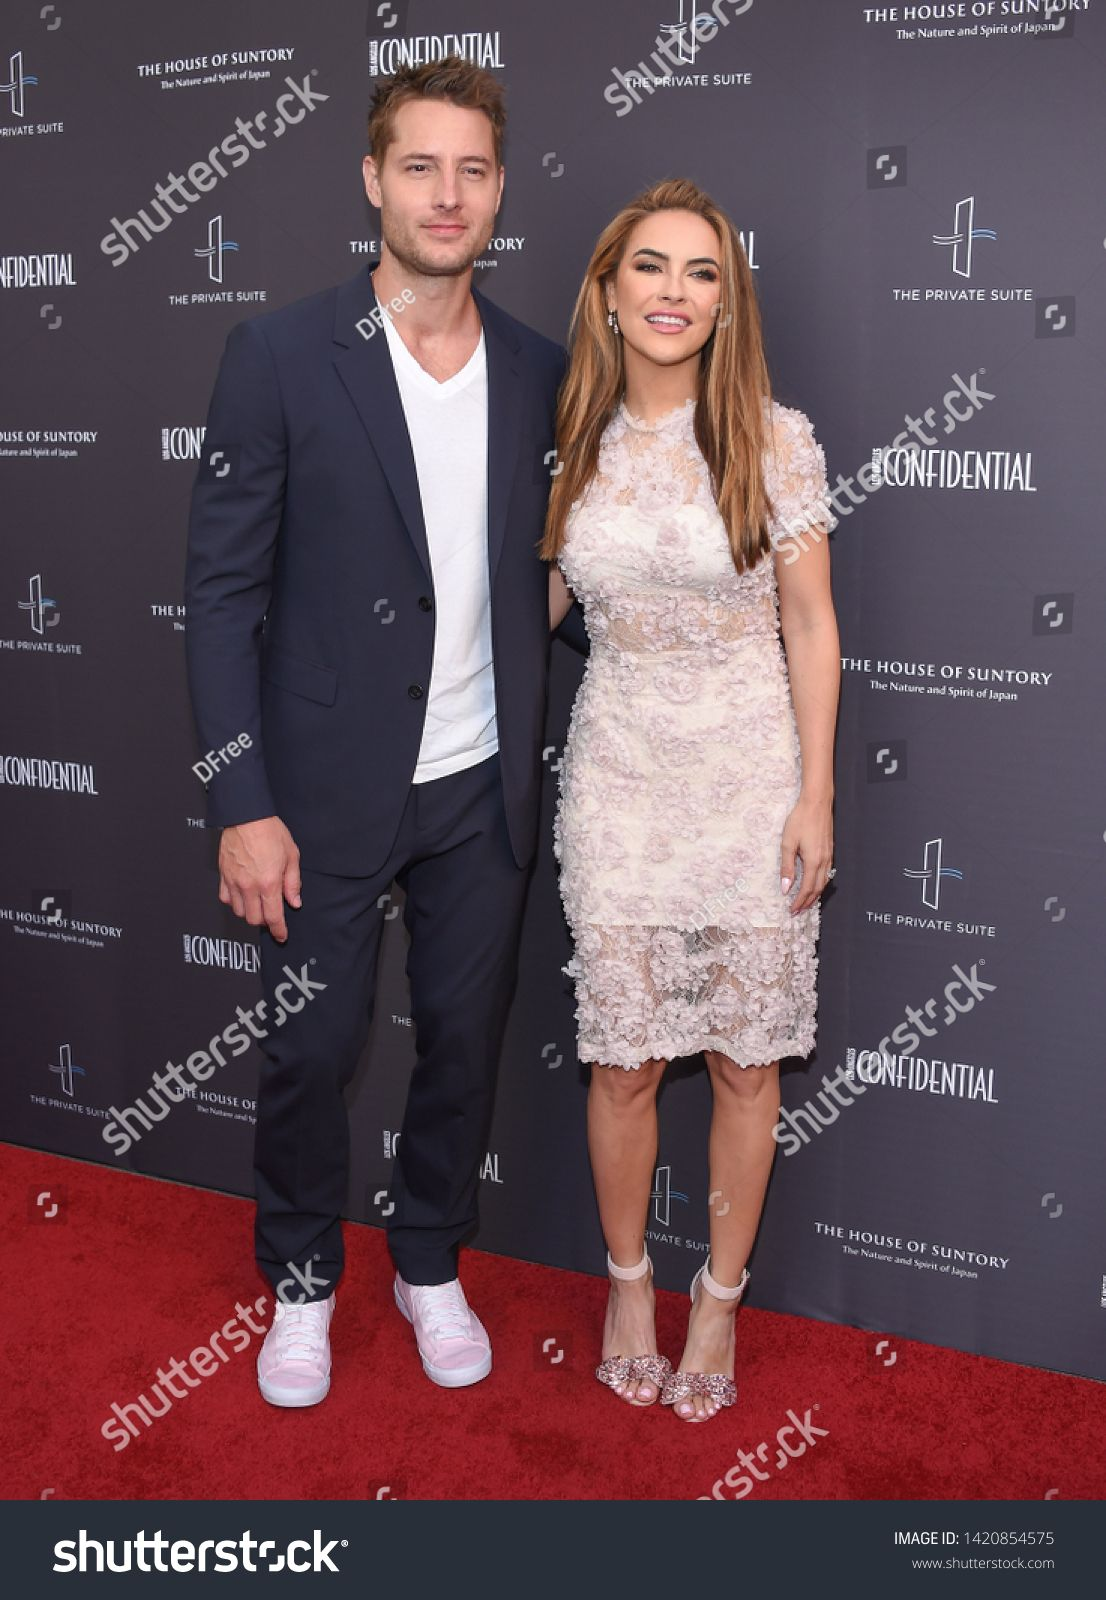 Los Angeles Jun 09 Justin Hartley And Chrishell Stause Arrives For The Below The Line Talent Fyc Event On June 09 2019 Photo Editing Photo Justin Hartley